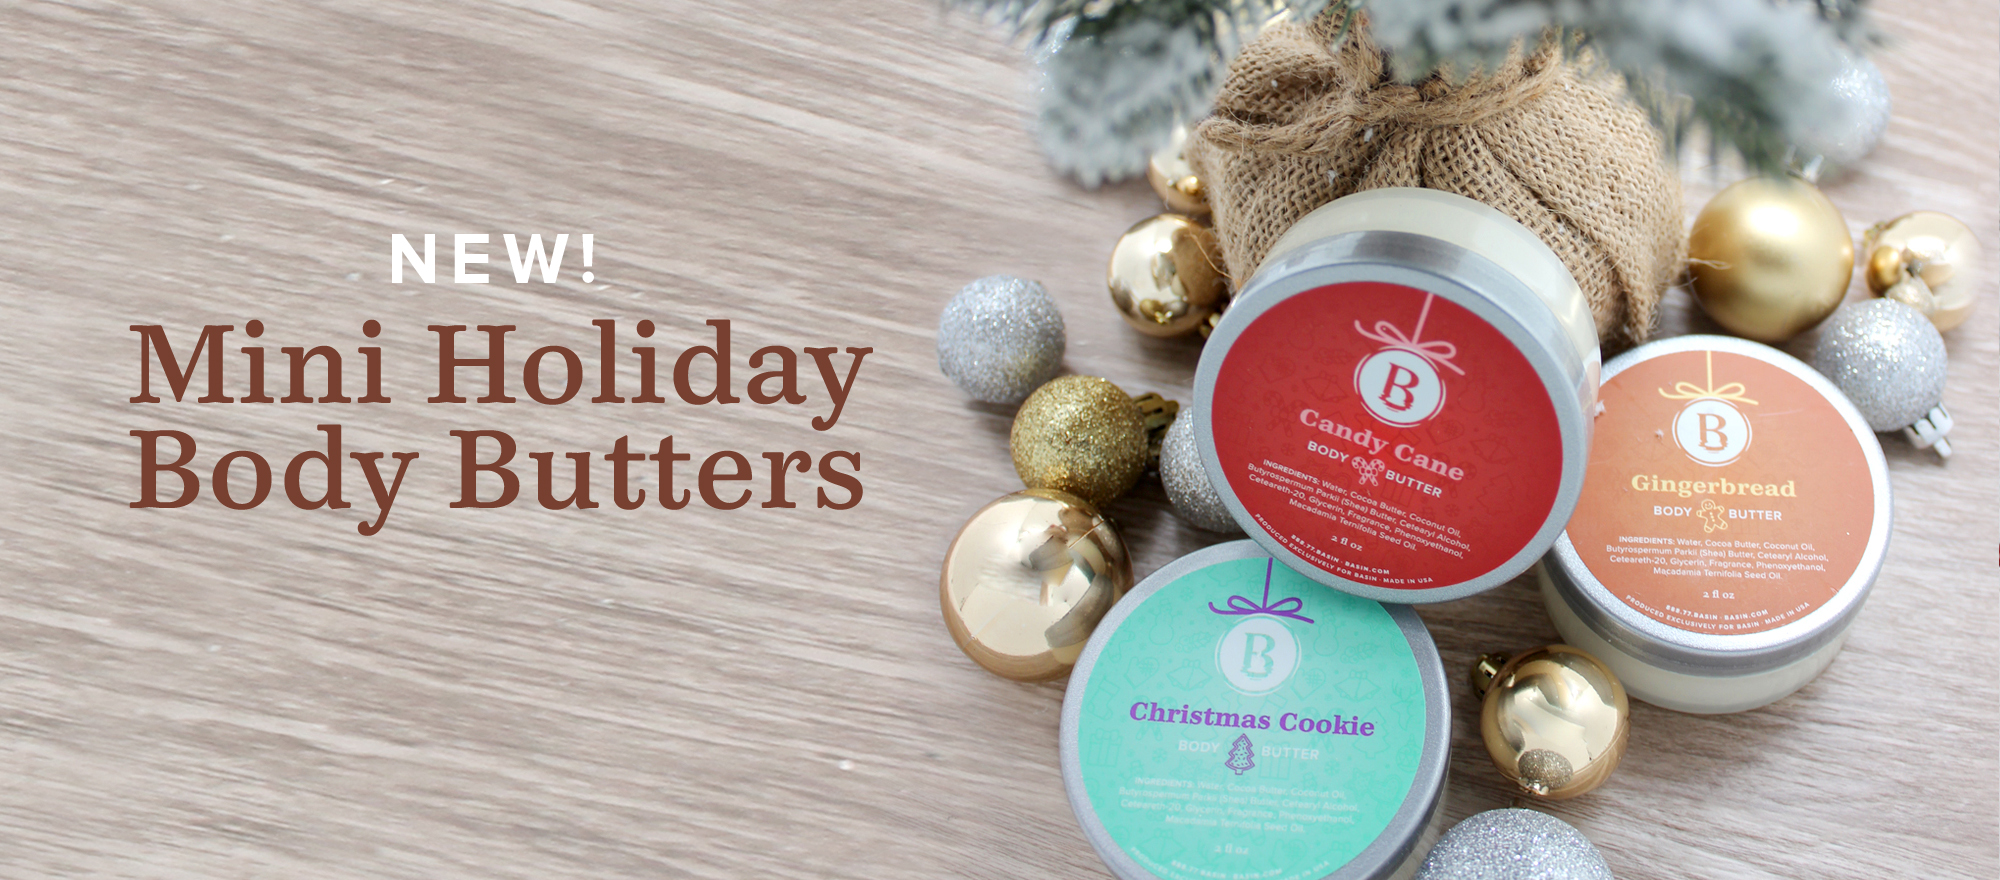 Mini Holiday Body Butters